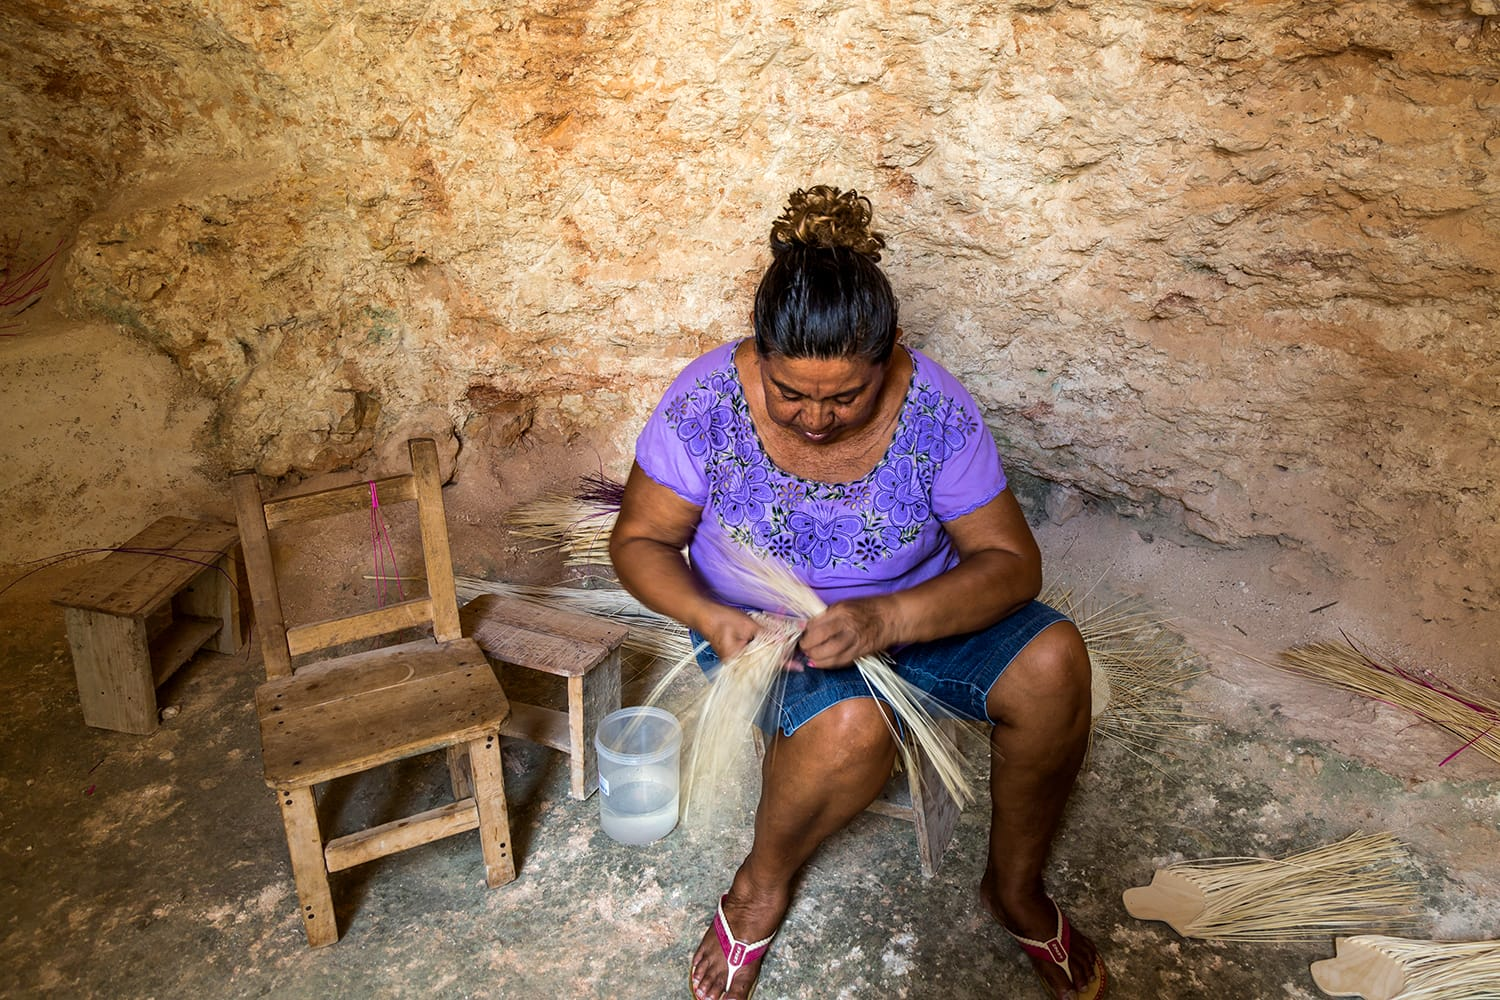 Artisan in cave weaving straw to make a hat in Becal, Mexico